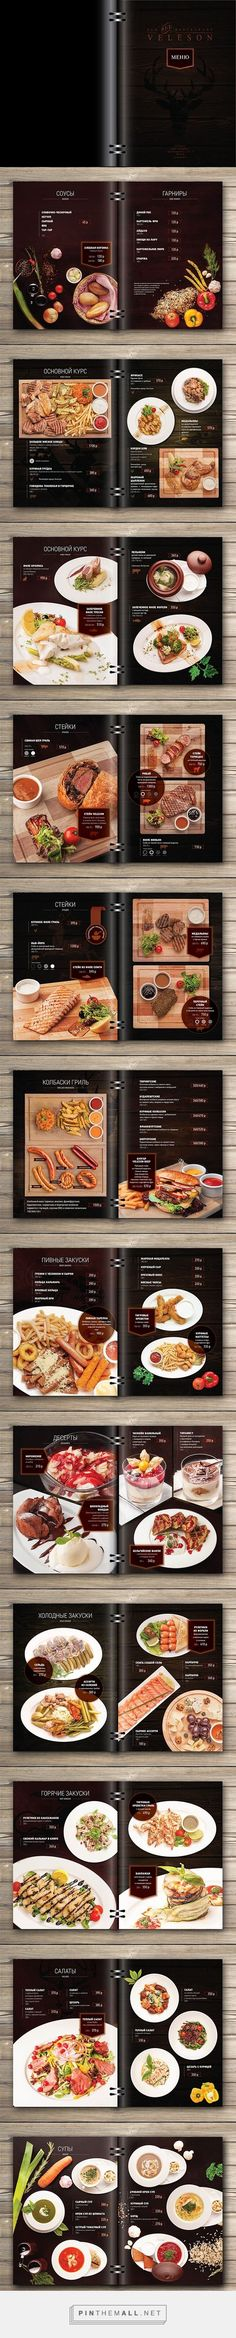 Make the food stand out with restaurant menu designs